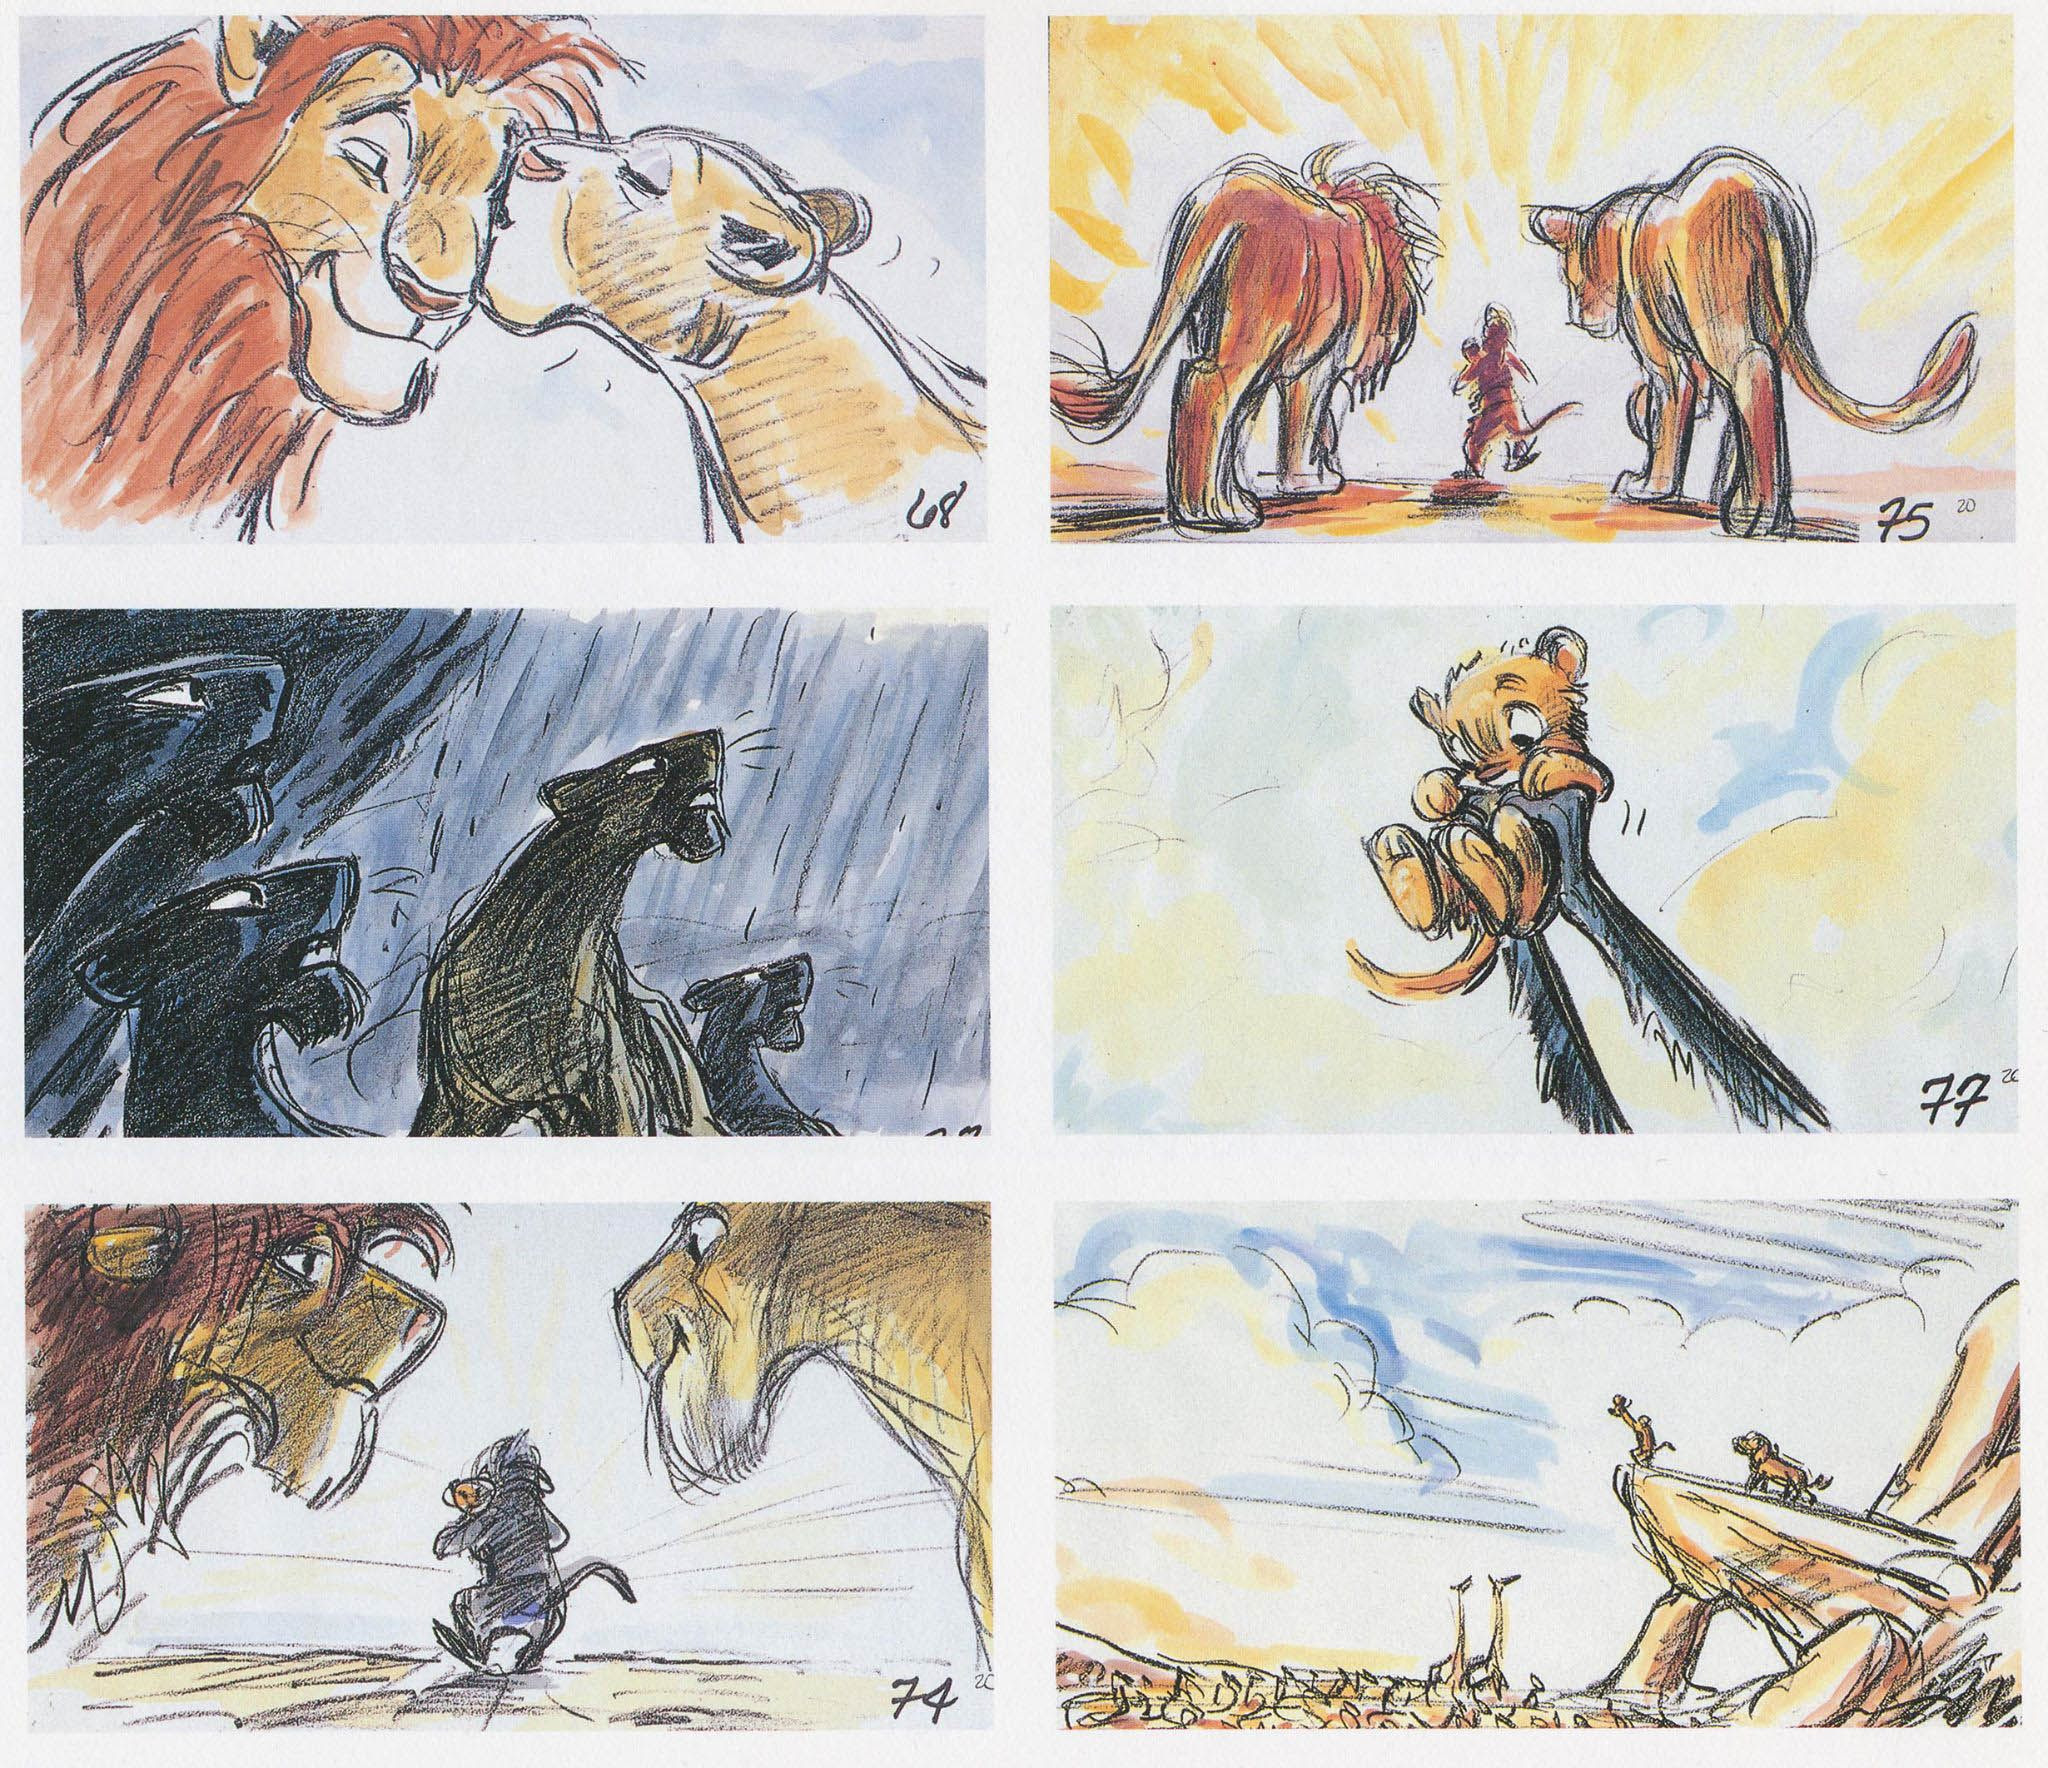 The Art of The Lion King #keyowo #artwork #arte #art #illustrator #illustration #ilustracion #draw #drawing #dibujar #dibujo #sketch #pencil #sketchbook #spanishartist #smile #artsblog #artist #artinfo #artcall #artinfo #artlovers #artoftheday #artwork #artshow #color #creative #fineart #follow #yourbrand #creative #inspirations #oilpaintings #originalartwork #paint #painting #photography #photoofday #photooftheweek #photos #portrait #portraiture #sketch #sketchbook #watercolor © Copyright…